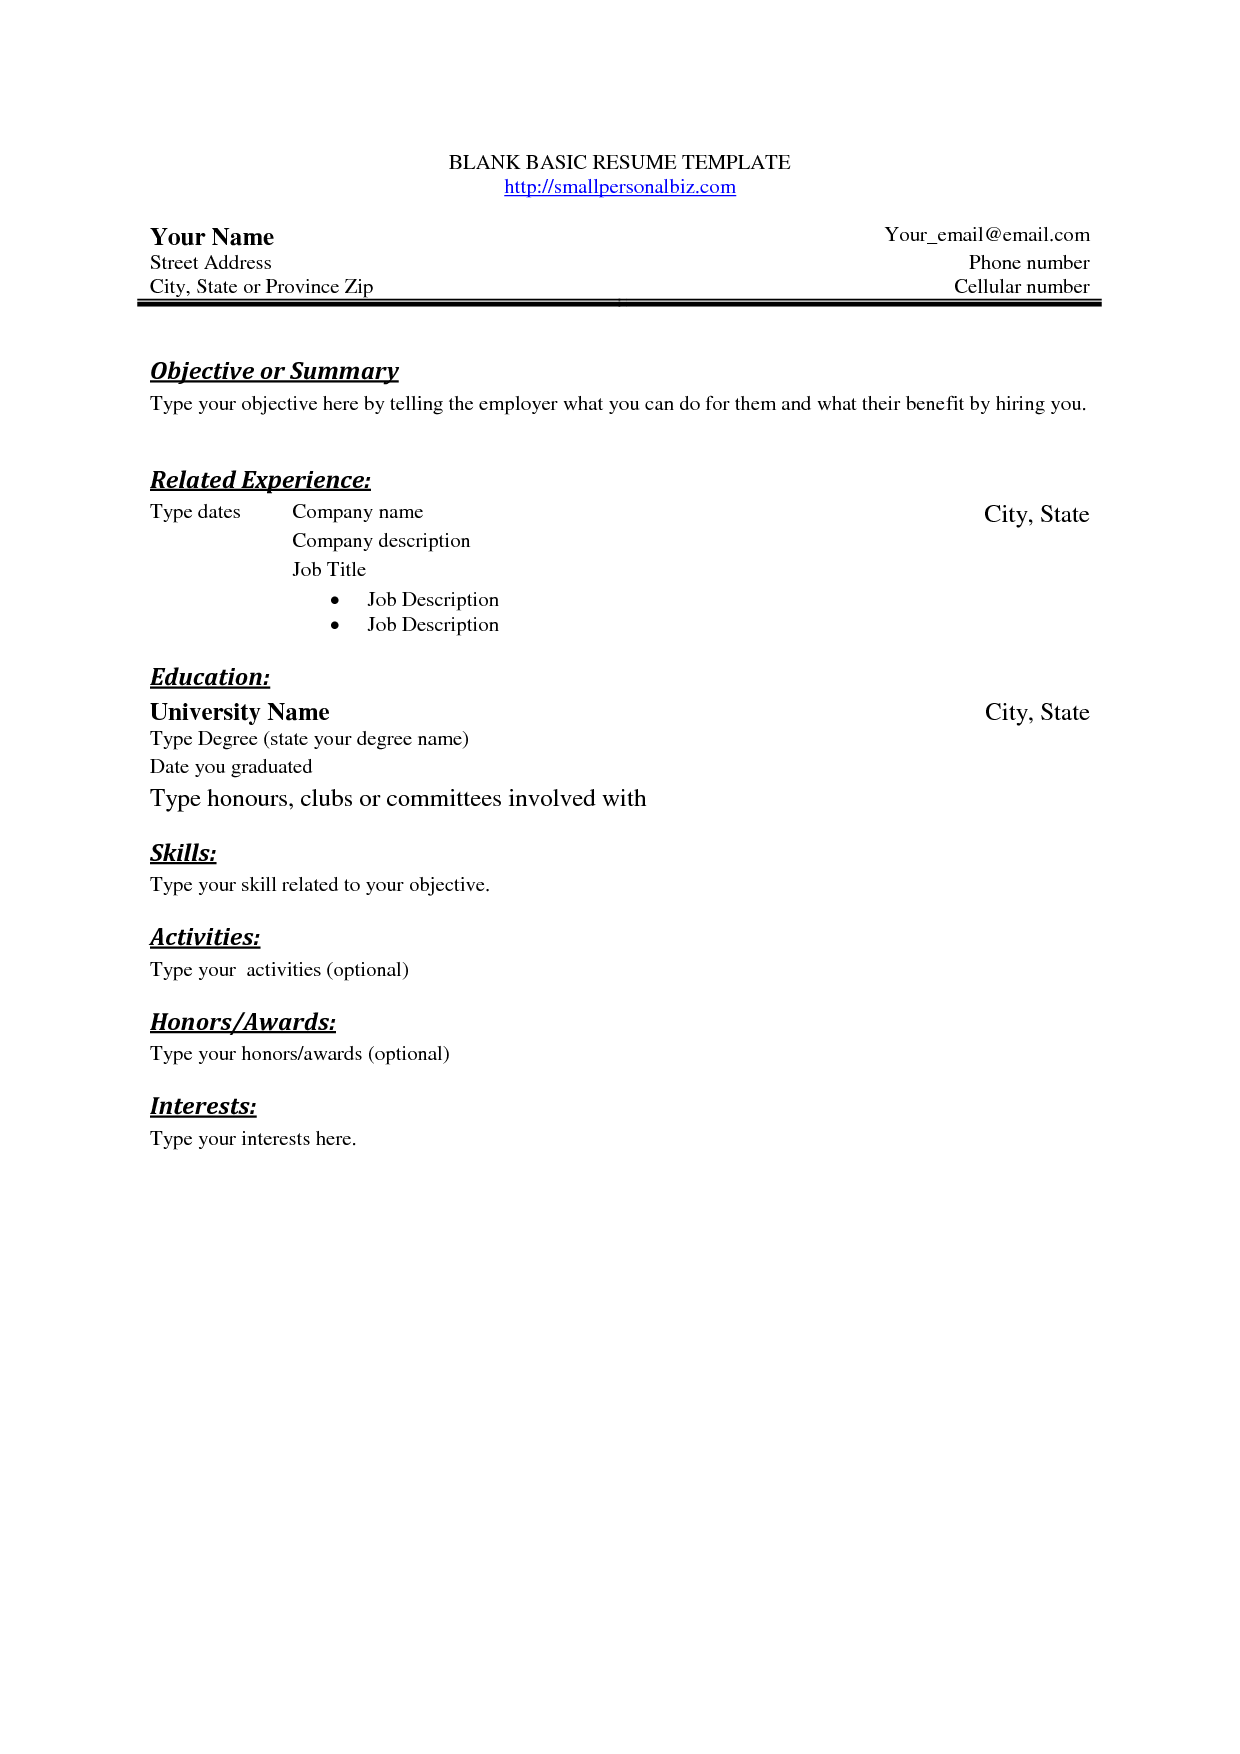 Stylist And Luxury Simple Resume Layout 10 Free Basic Blank Resume Template    Resume Example  Resume Tem